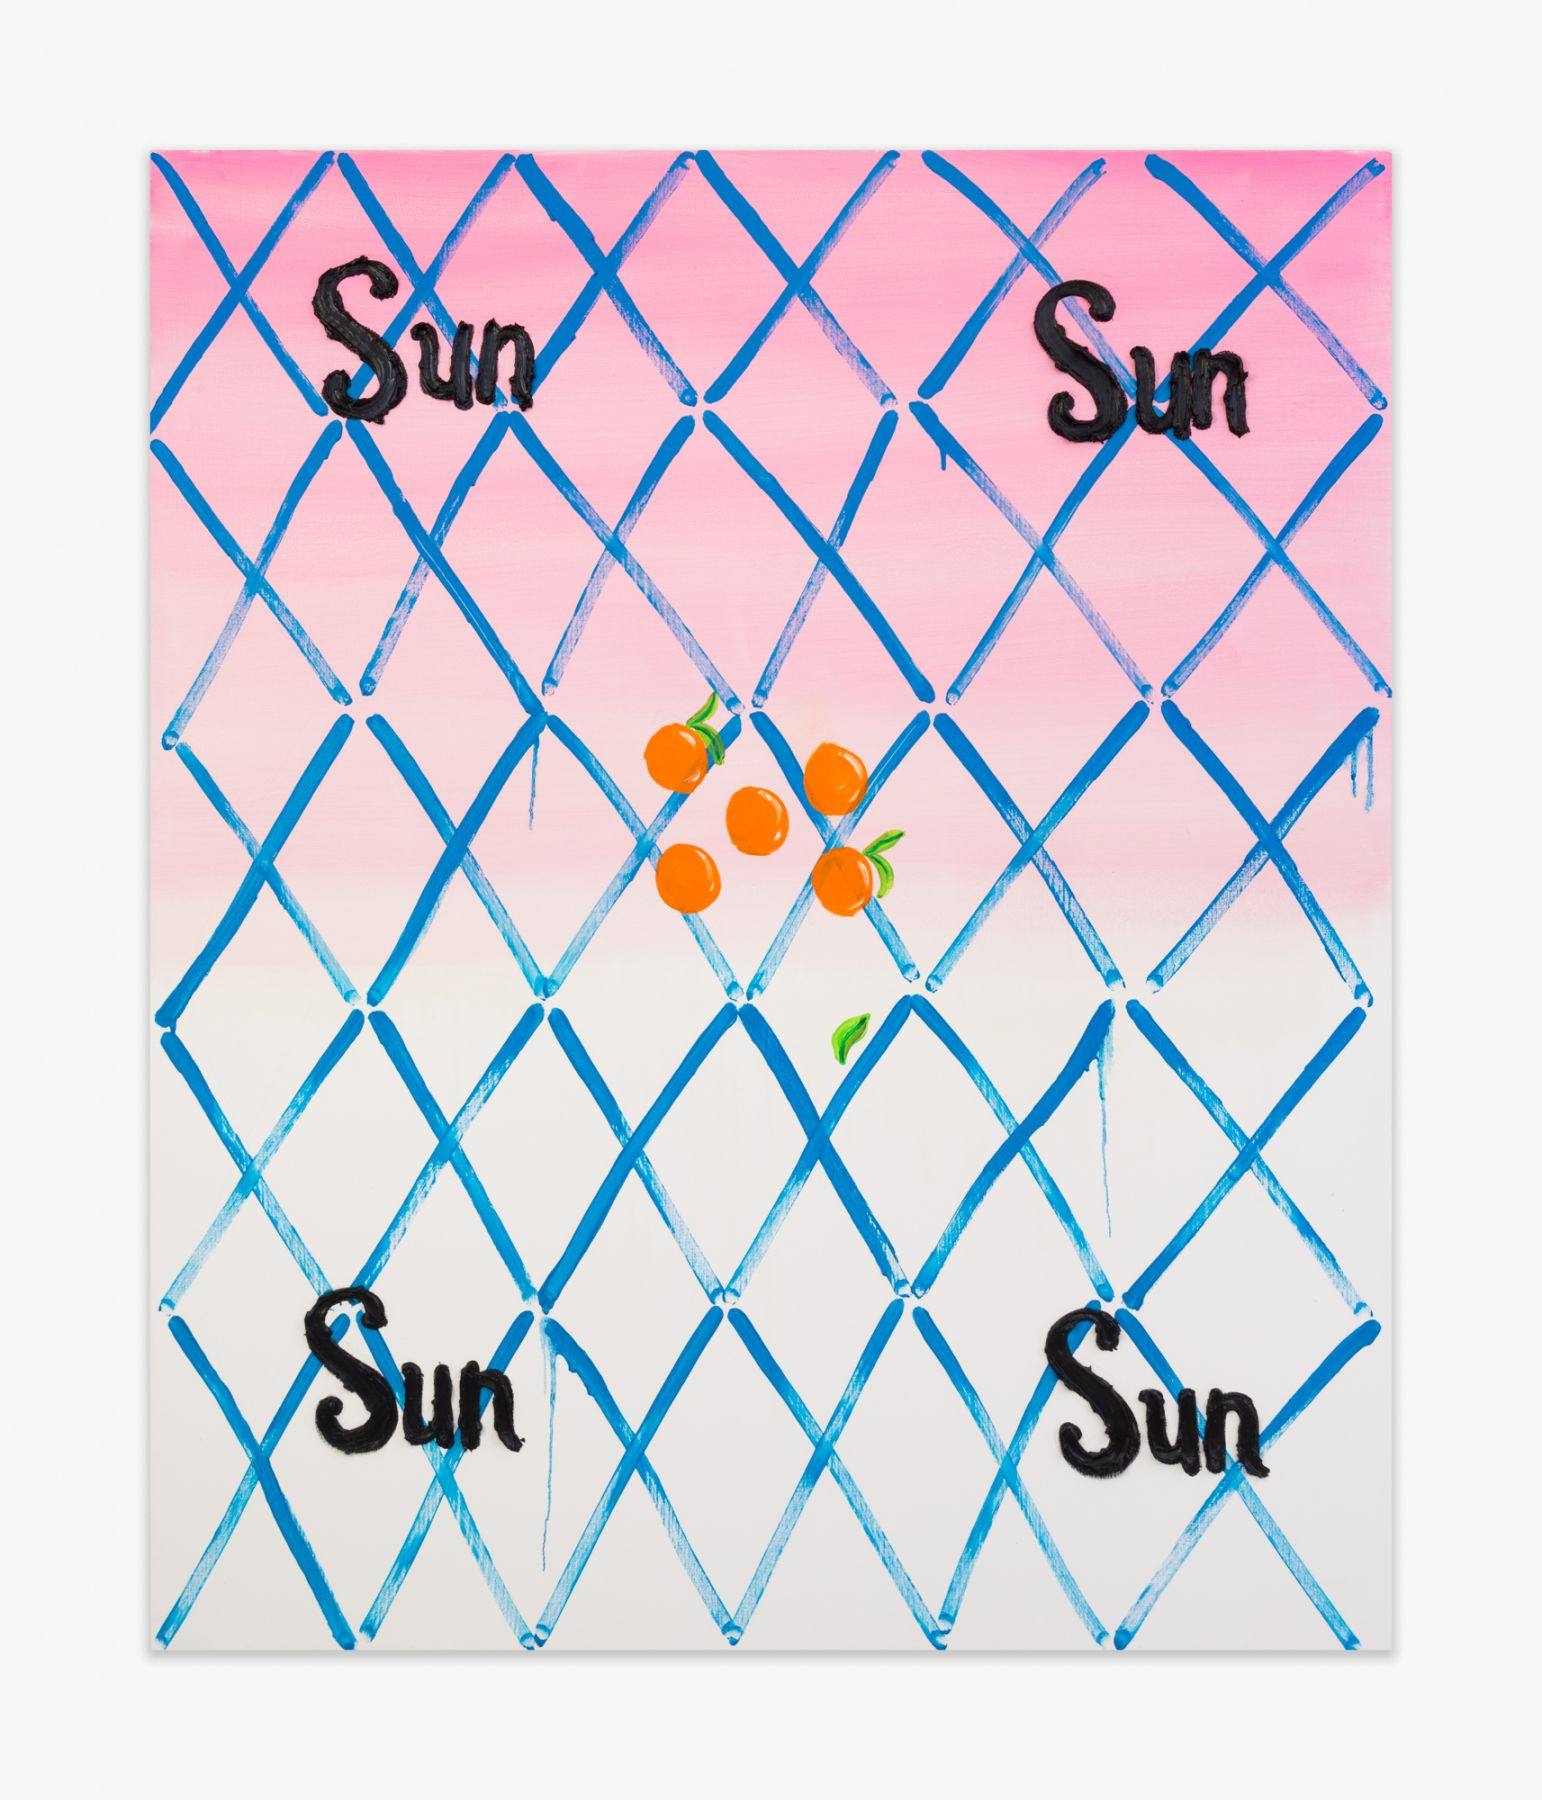 Jason Stopa The Sun Rises Twice (Sunkist), 2016